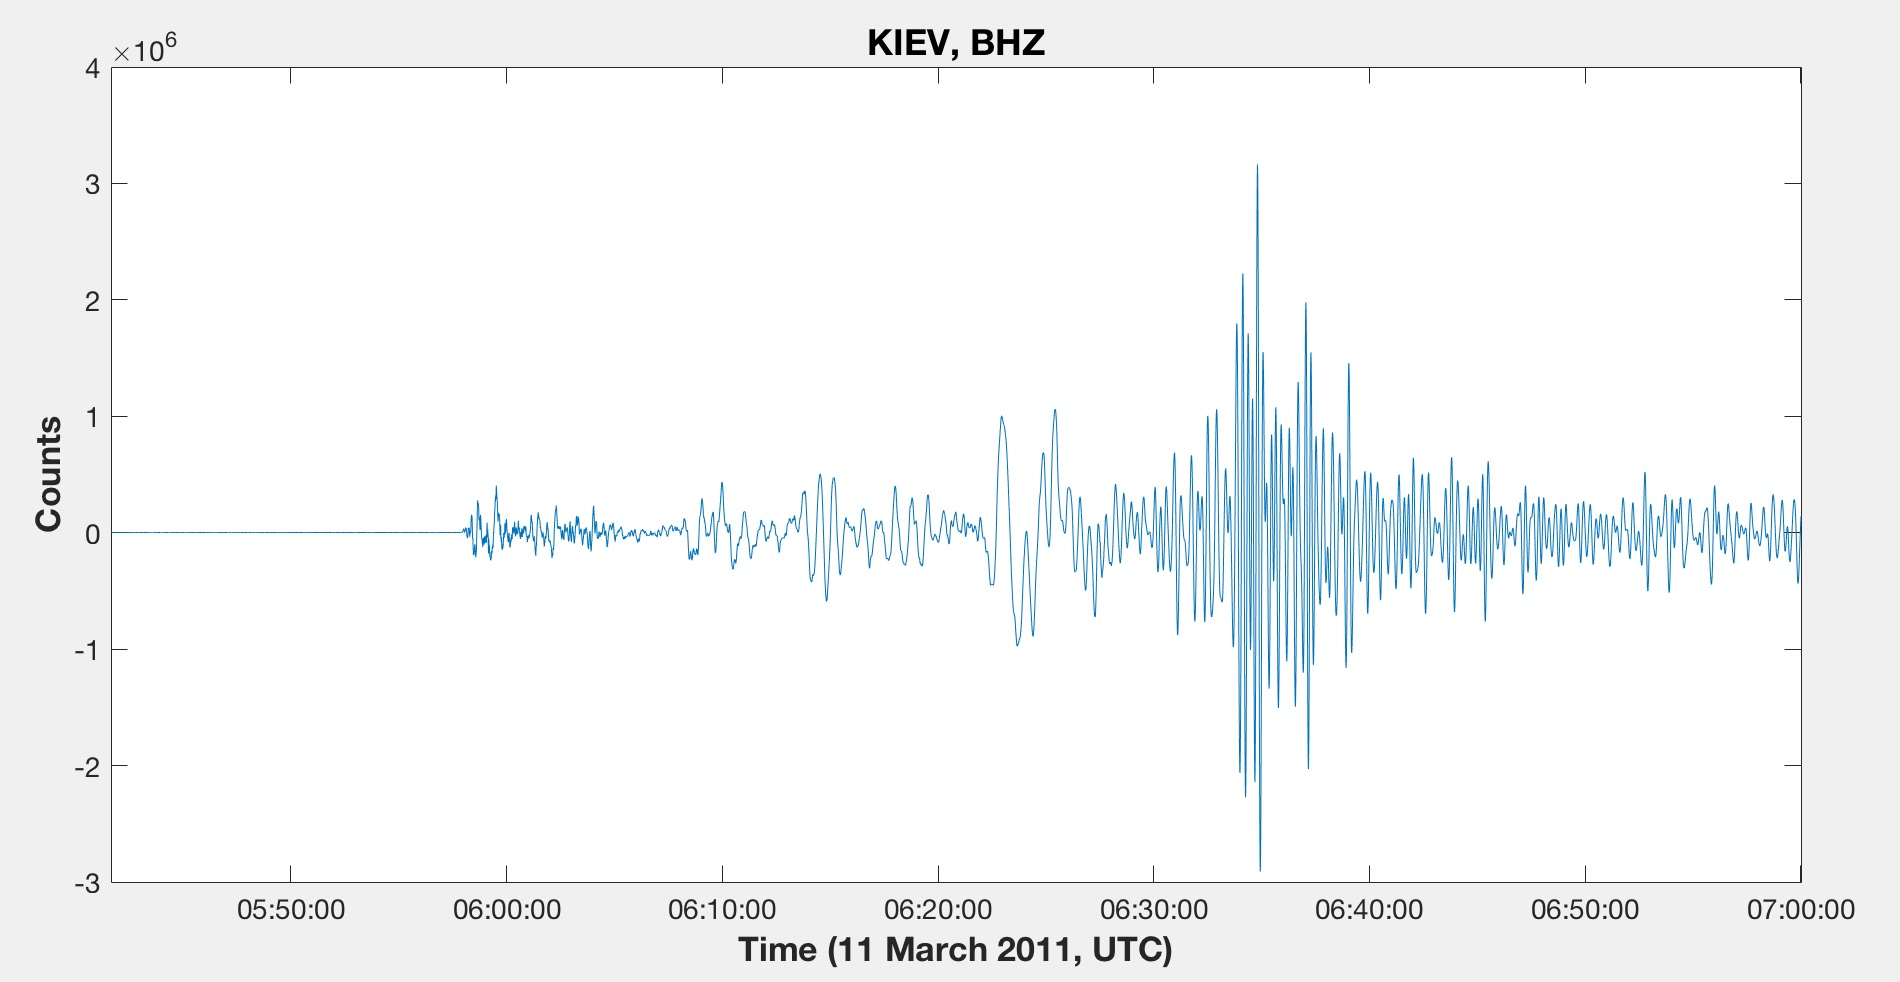 The waveforms plotted for the trace shown above.